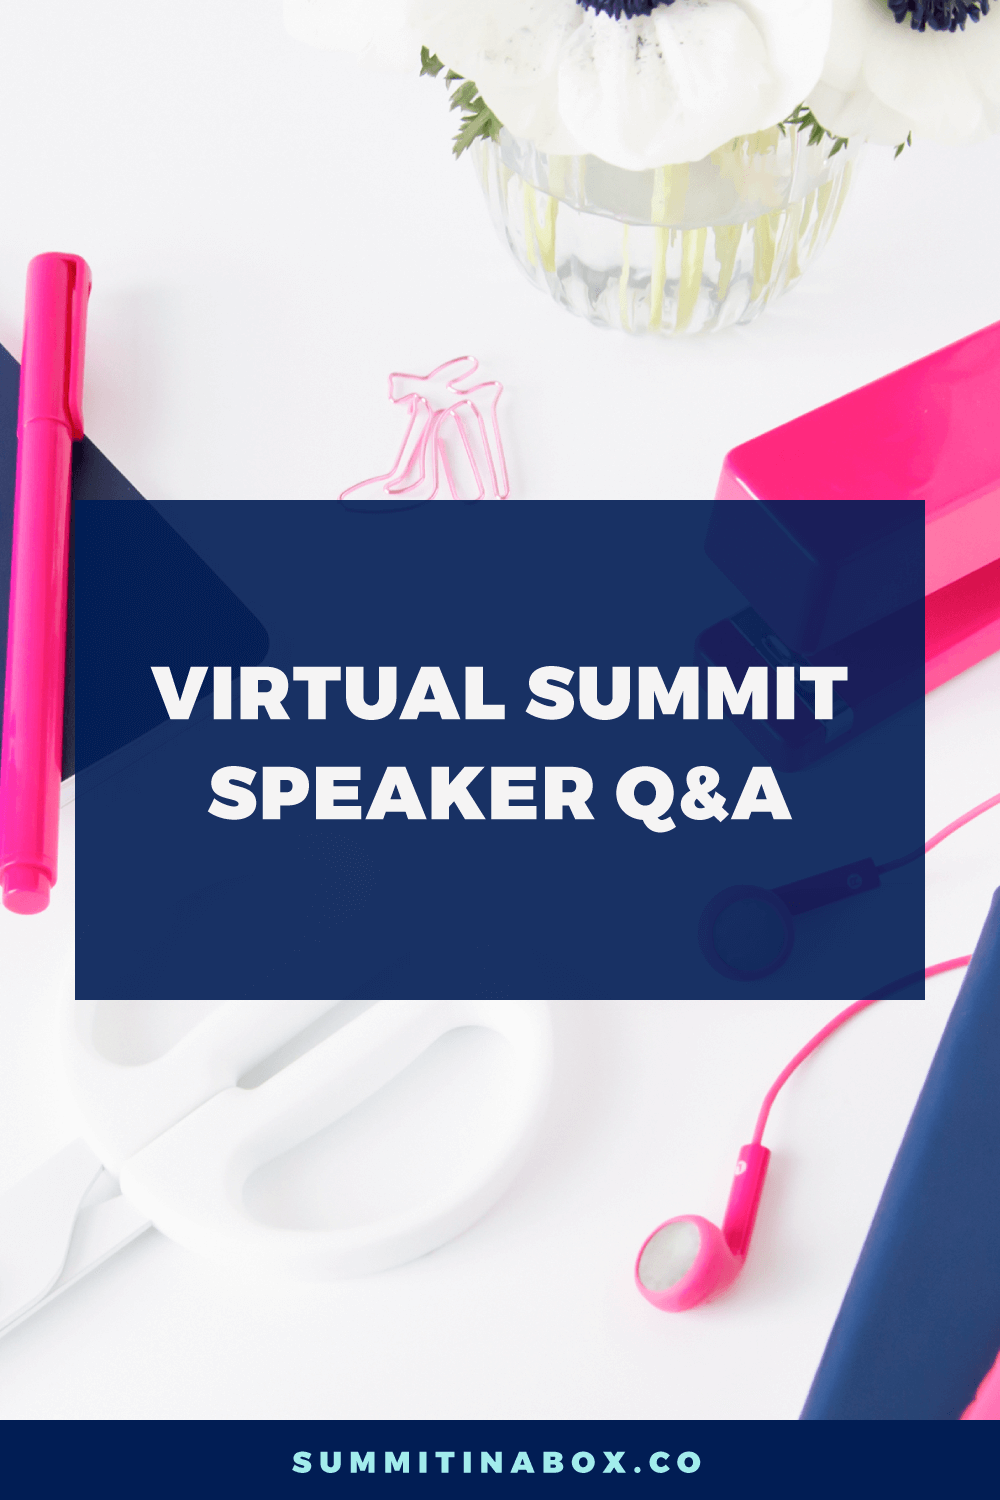 Have questions about your virtual summit speakers? I've got answers for you in today's rapid-fire Q&A episode covering everything from contracts to benefits.